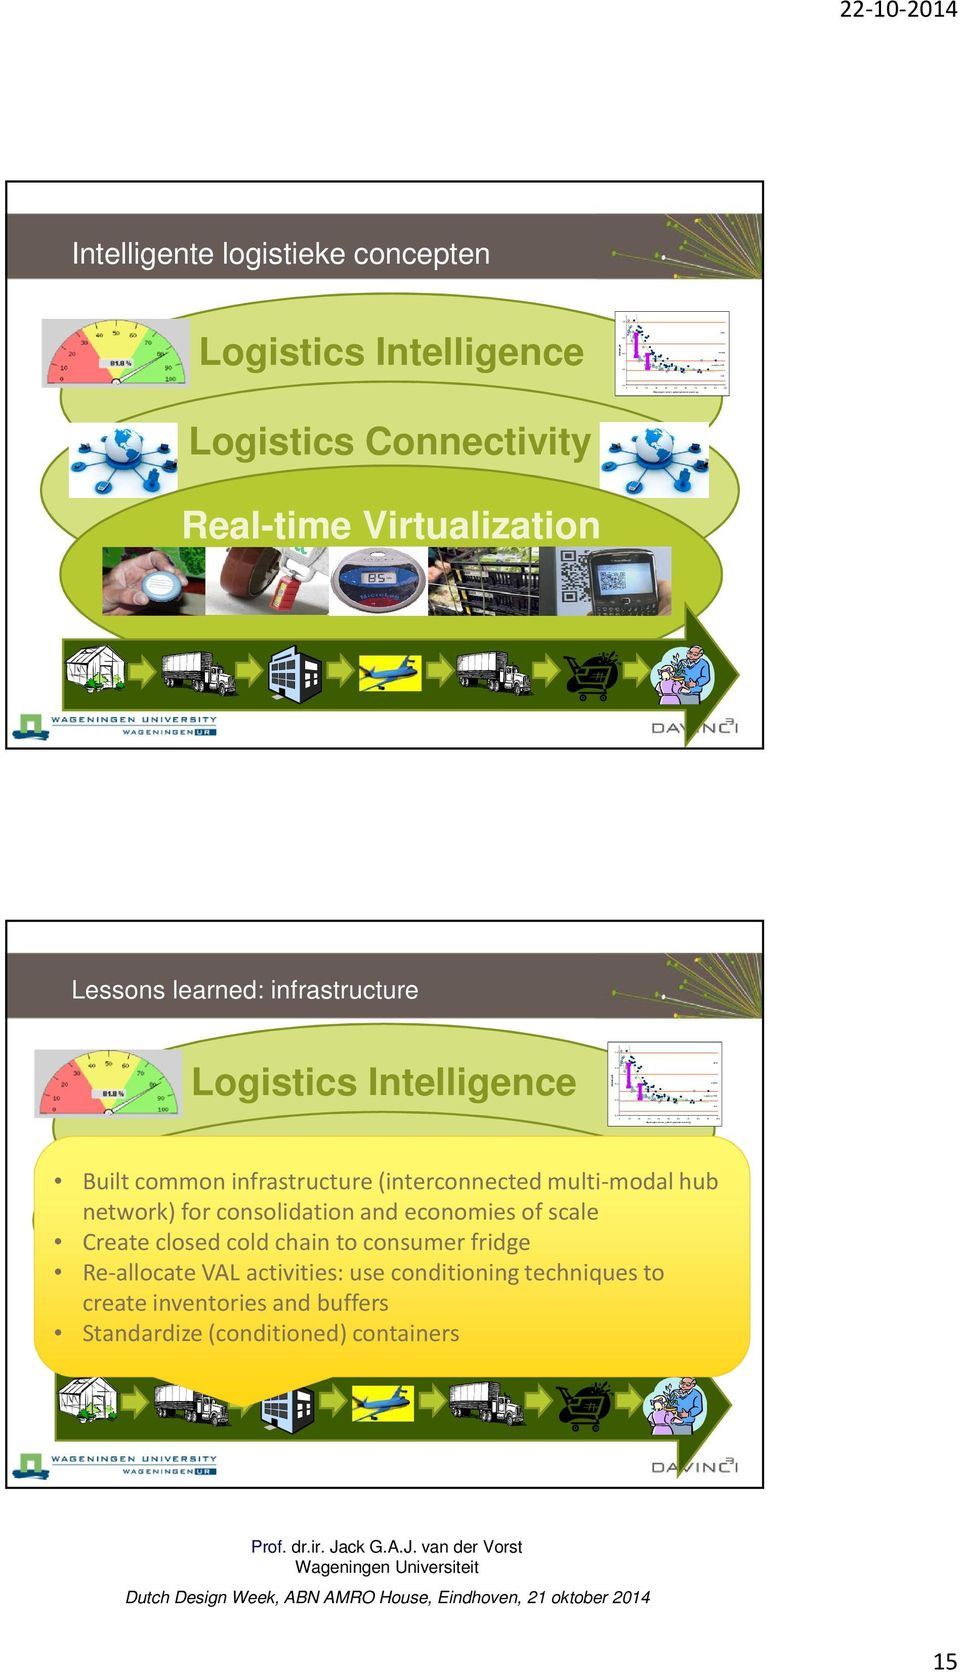 /g) DFD normal normal or PSE acid acid 22-10-2014 Intelligente logistieke concepten Logistics Intelligence Ultimate ph Logistics Connectivity Real-time Virtualization Lessons learned: